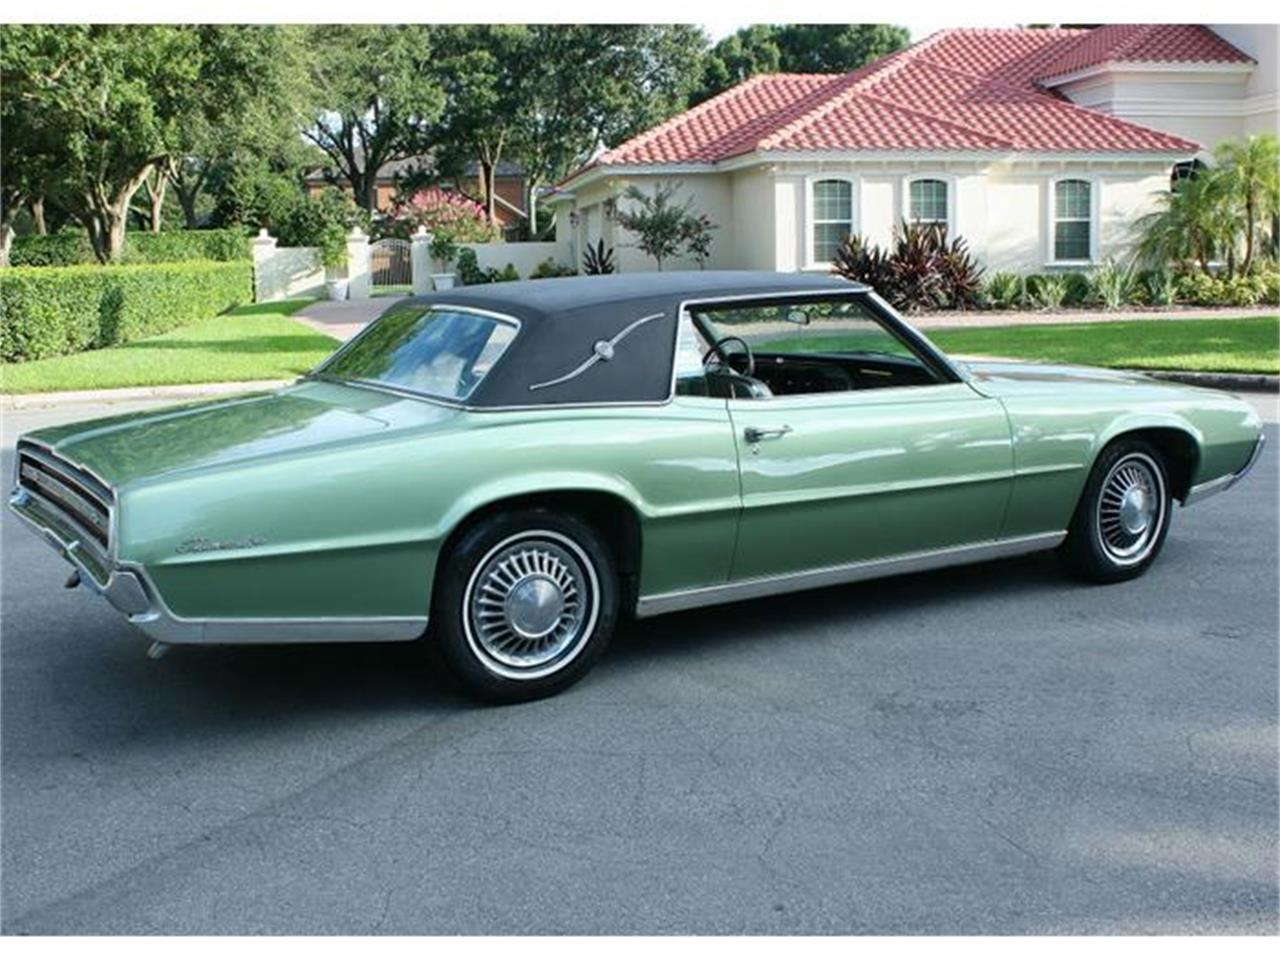 Large Picture of Classic 1967 Ford Thunderbird located in Lakeland Florida - $18,500.00 - ITN1